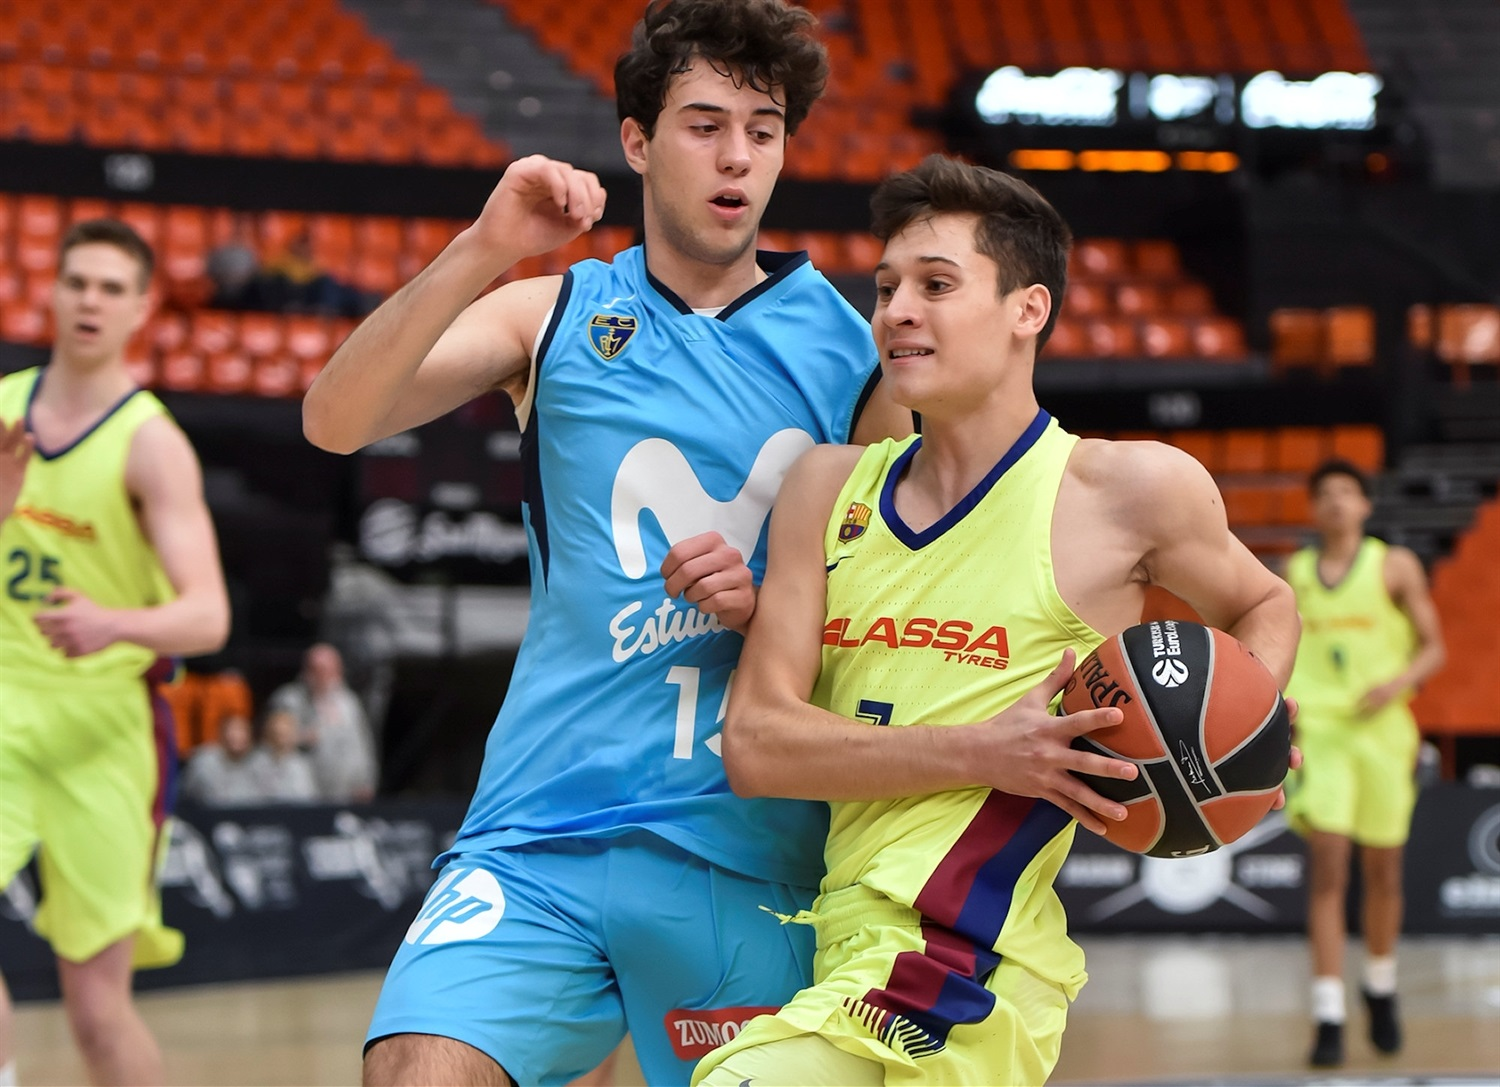 Pol Mulio - U18 FC Barcelona Lassa (photo Miguel Angel Polo - Valencia) - JT18